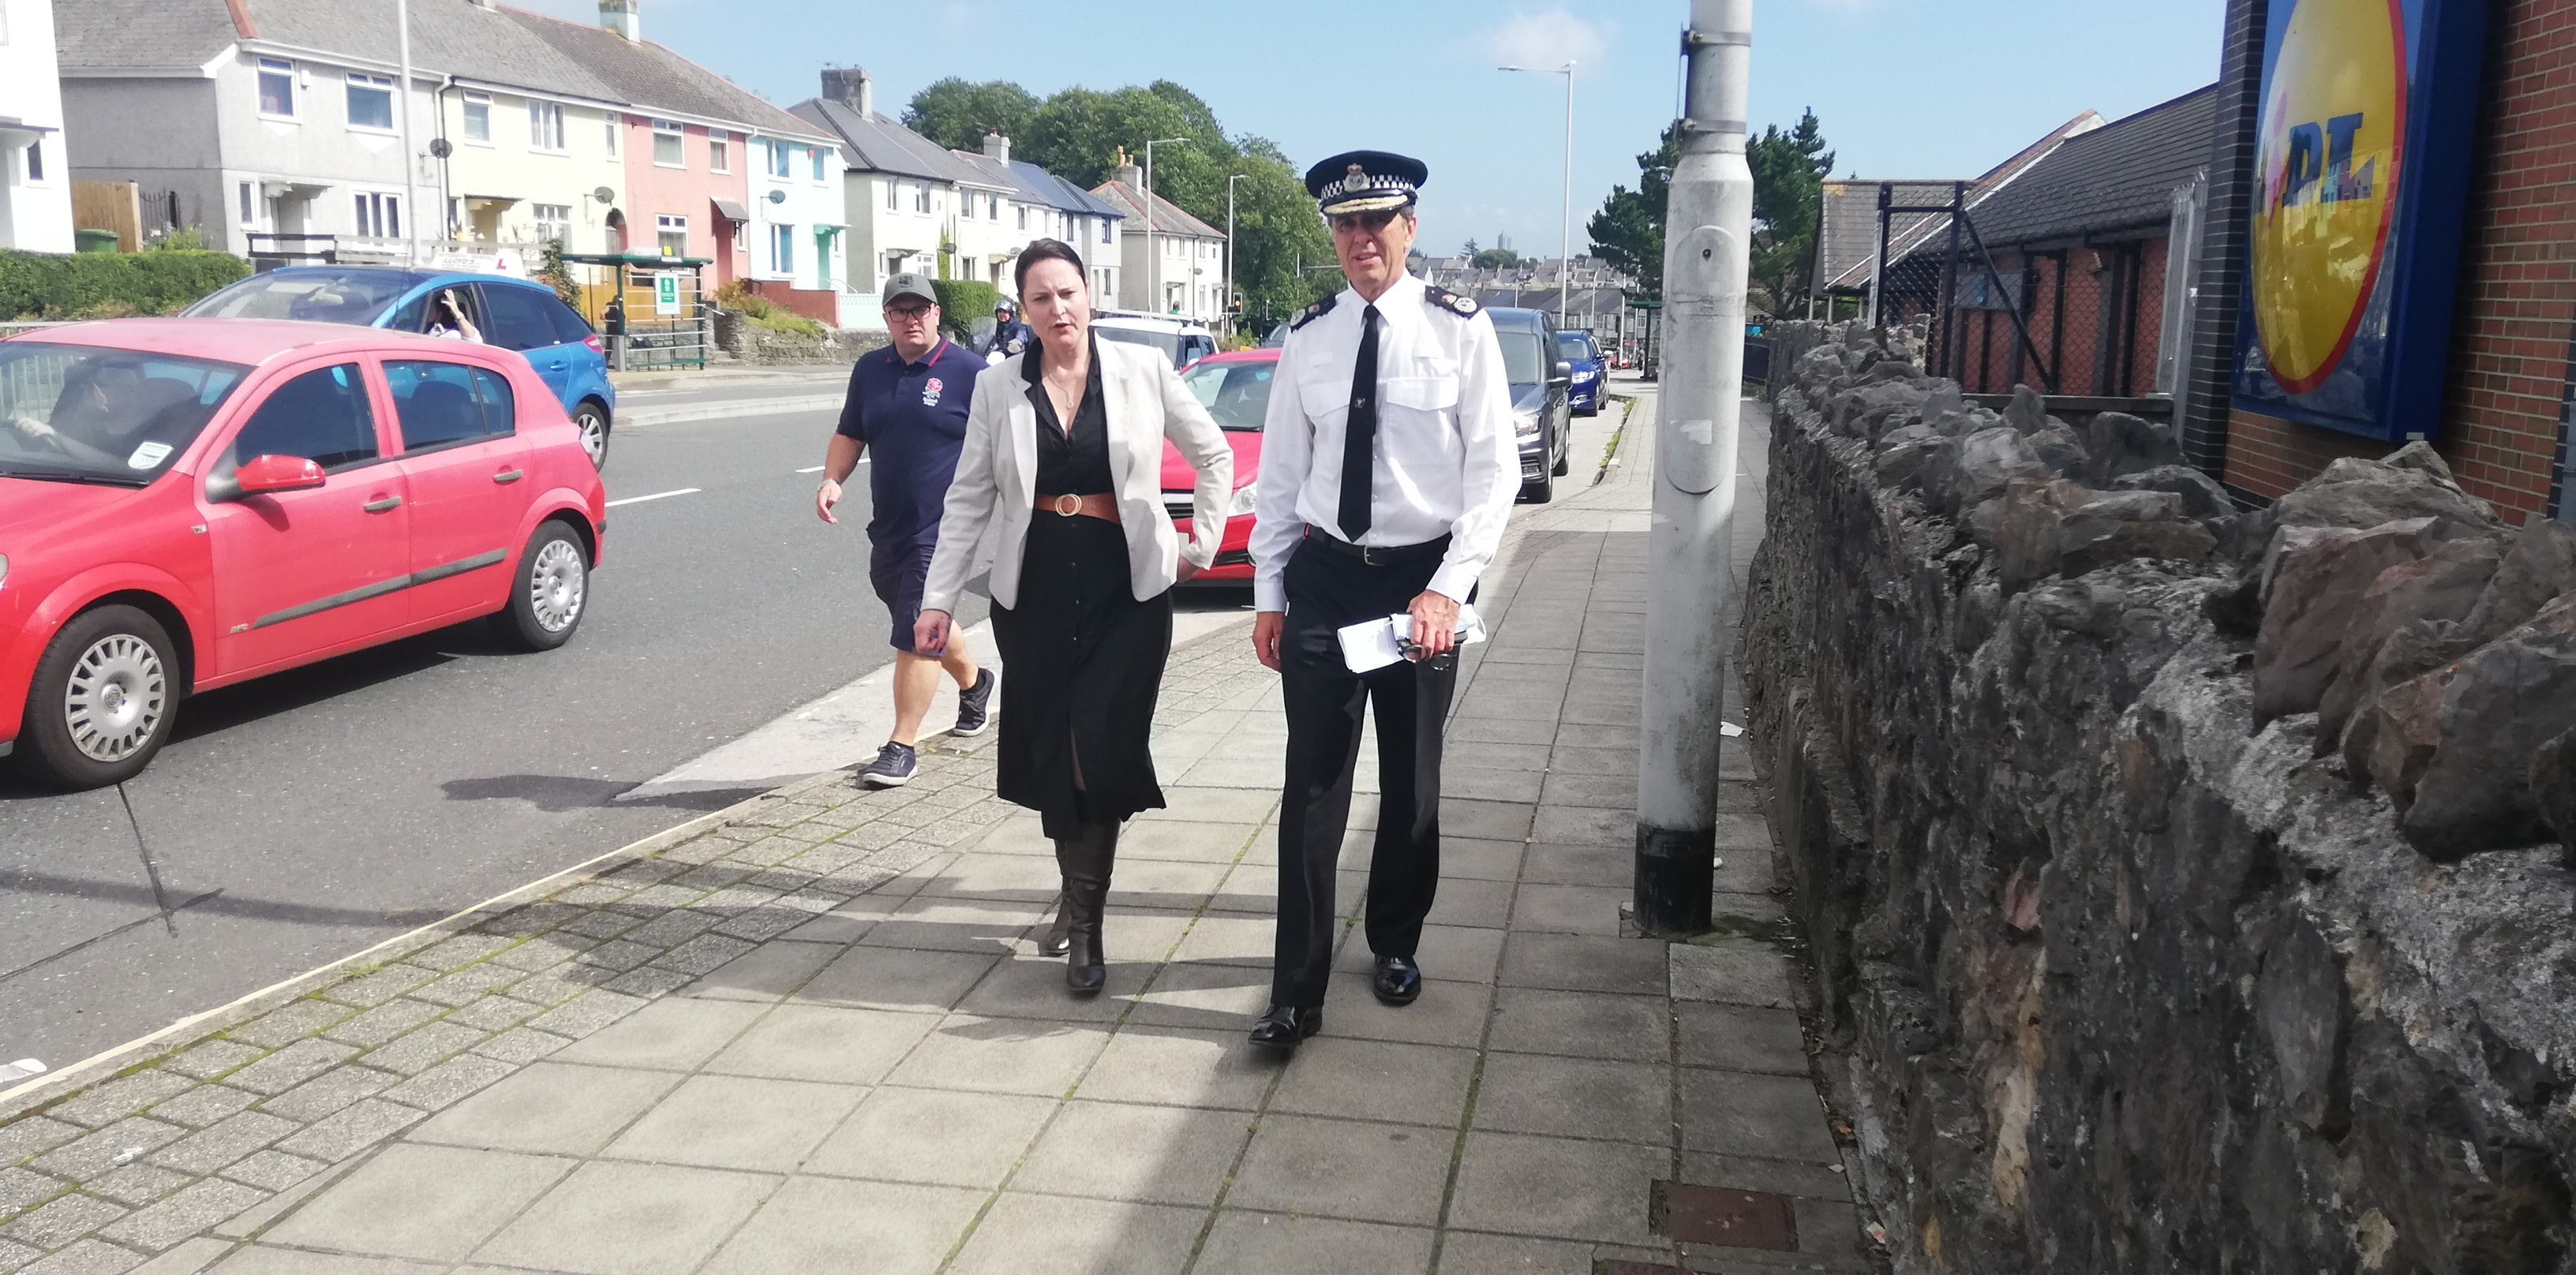 Police and Crime Commissioner responds to IOPC update